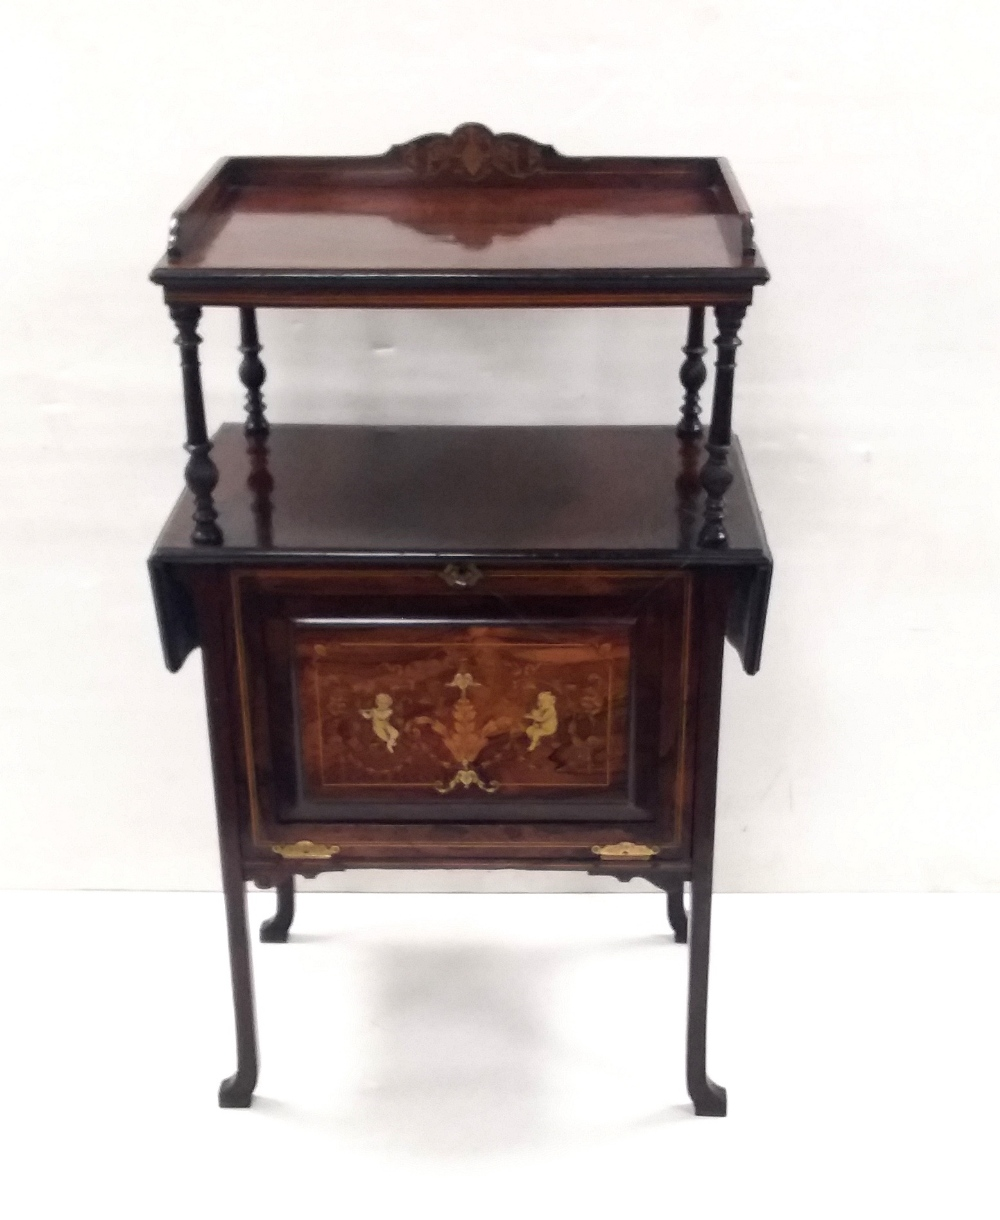 Late Vict Inlaid Rosewood Dropleaf Side Cabinet Dimensions: 60cm W 36cm D 103cm H